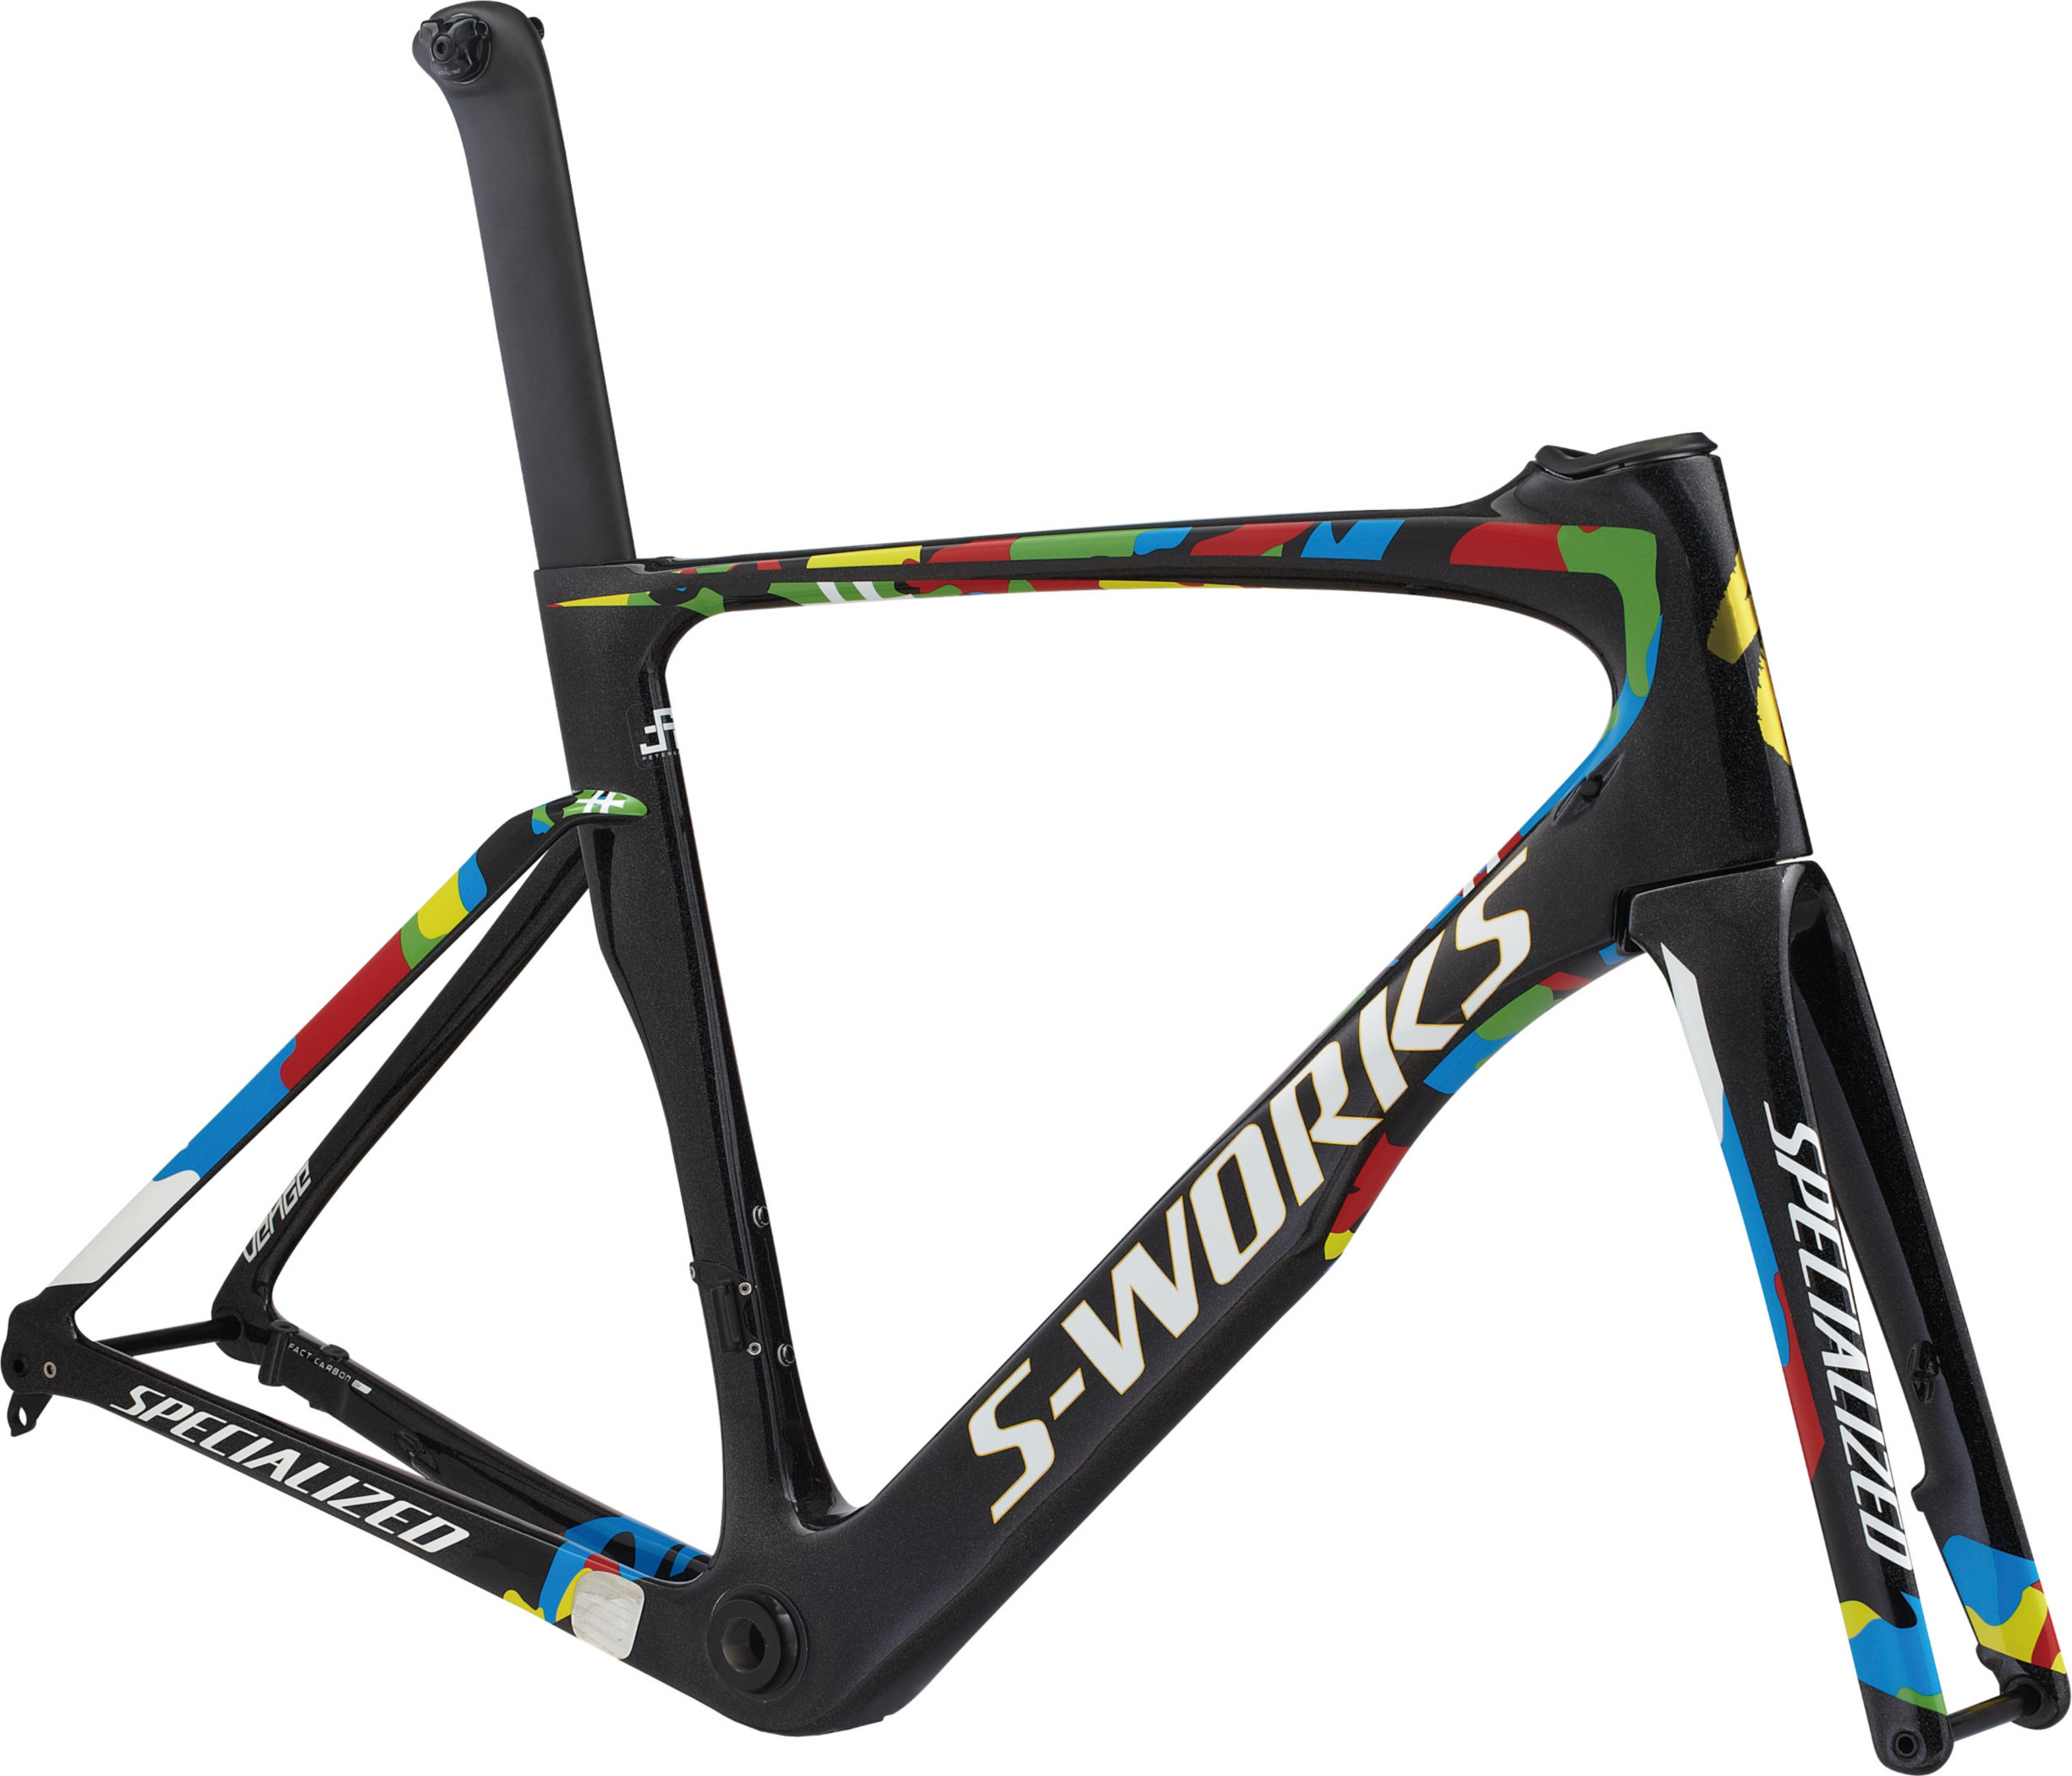 SPECIALIZED SW VENGE DISC VIAS FRMSET SAGAN WC 49 - SPECIALIZED SW VENGE DISC VIAS FRMSET SAGAN WC 49